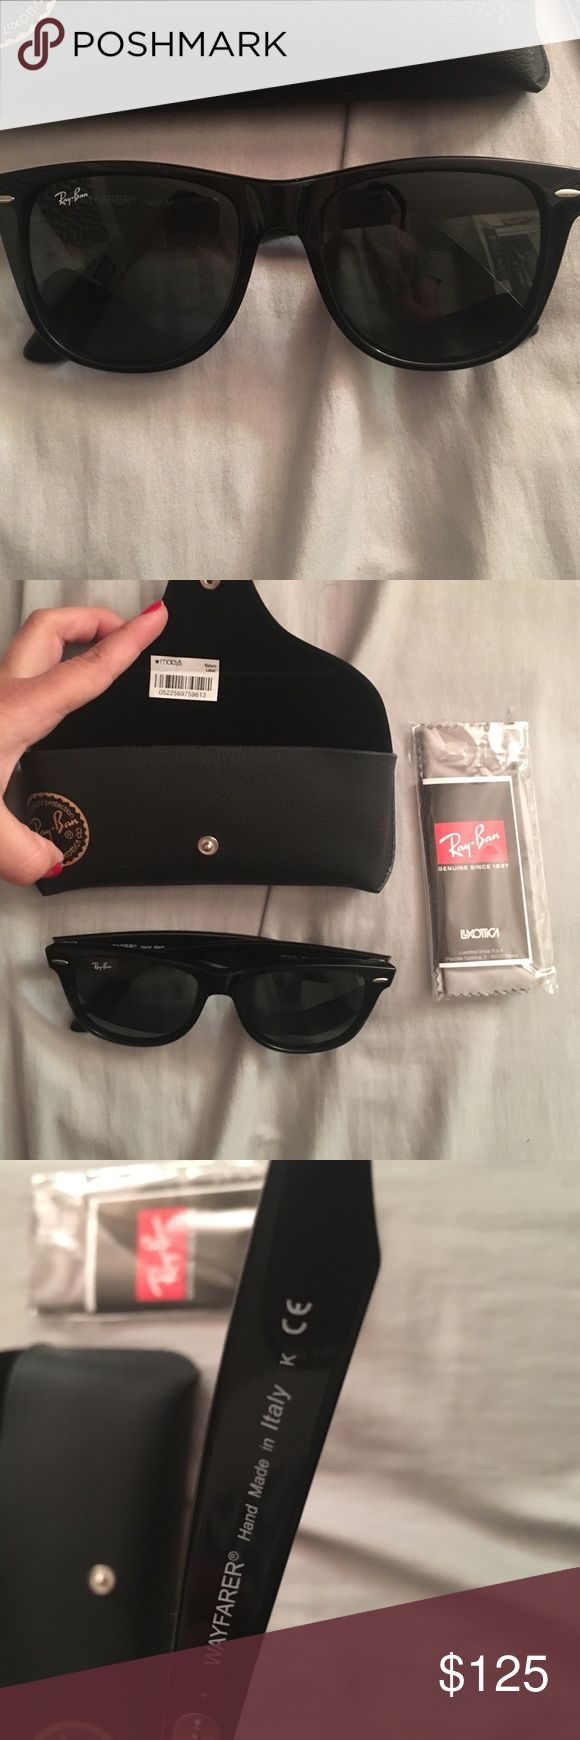 Ray ban wayfarer Brand new never used I believe it's the big size Ray-Ban Accessories Glasses